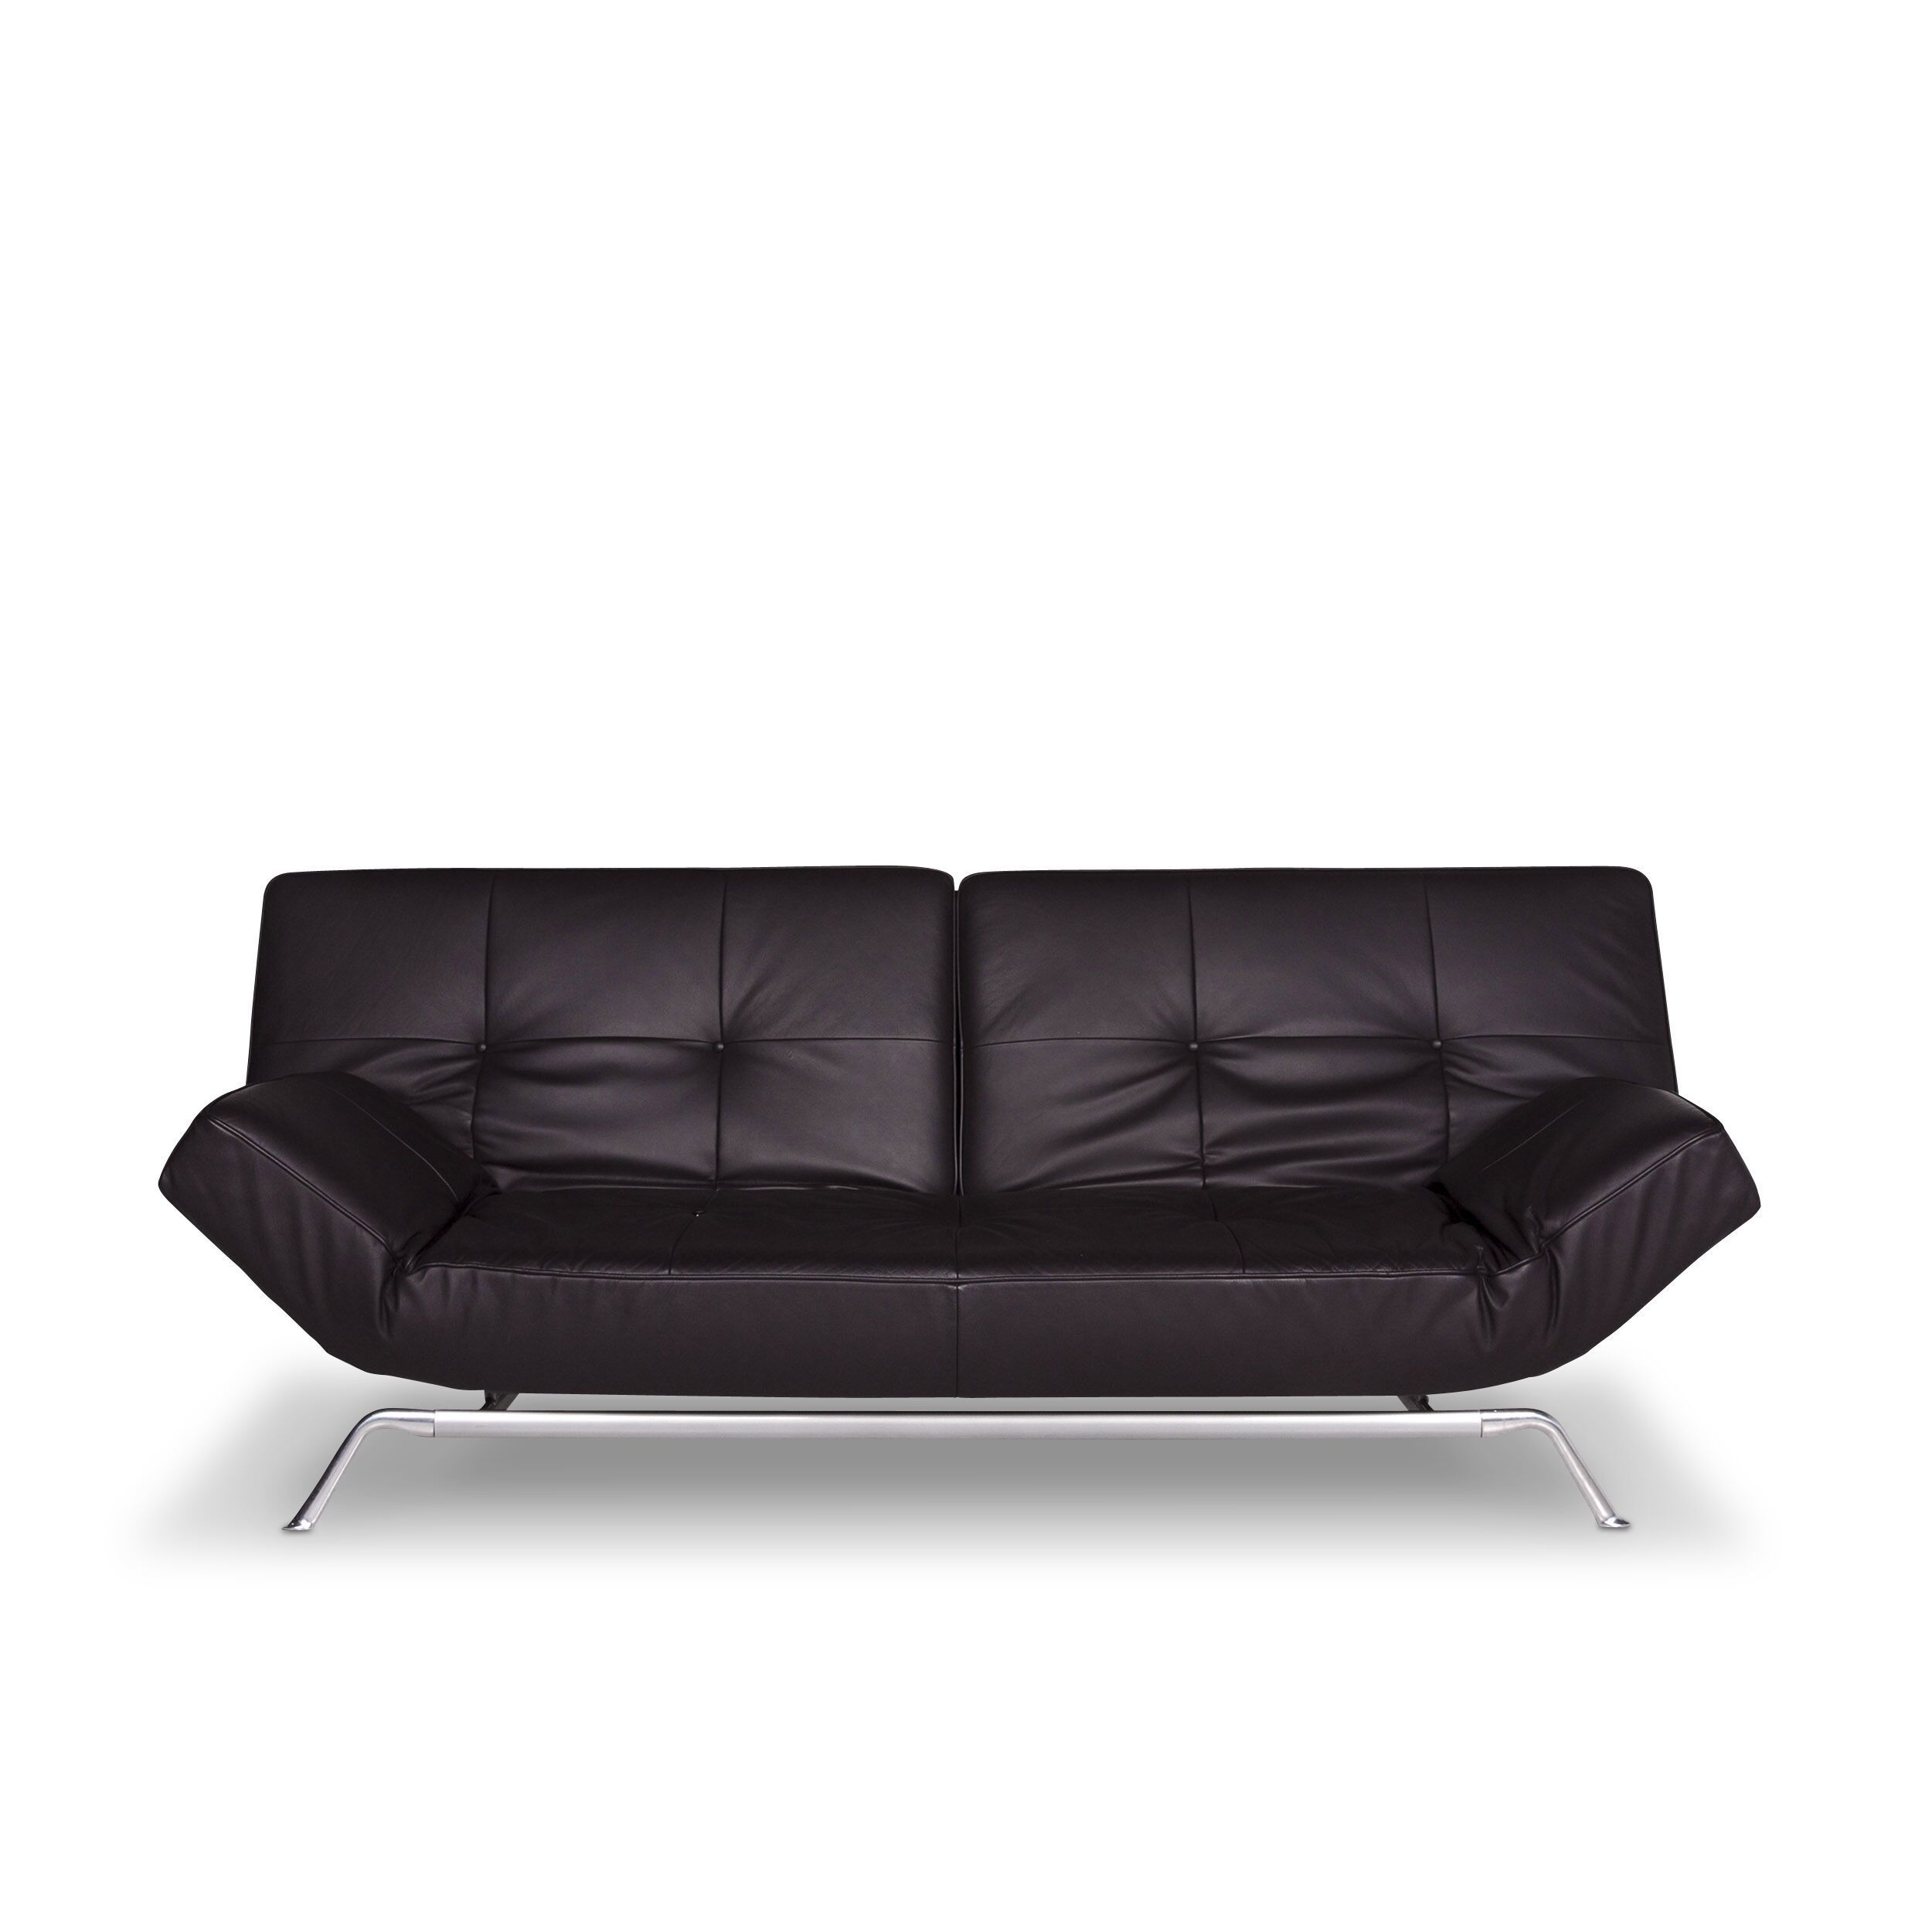 Ligne Roset Smala Designer Leather Sofa Black Two Seater Sofa Bed Couch  #9720